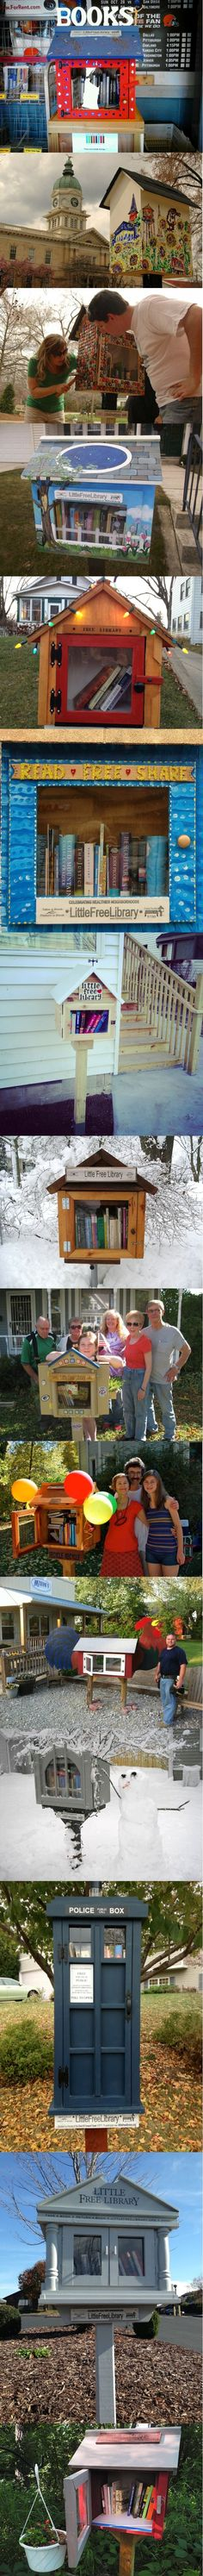 Free Little Library for the Neighborhood. http://www.mymodernmet.com/profiles/blogs/little-free-library http://www.littlefreelibrary.org/